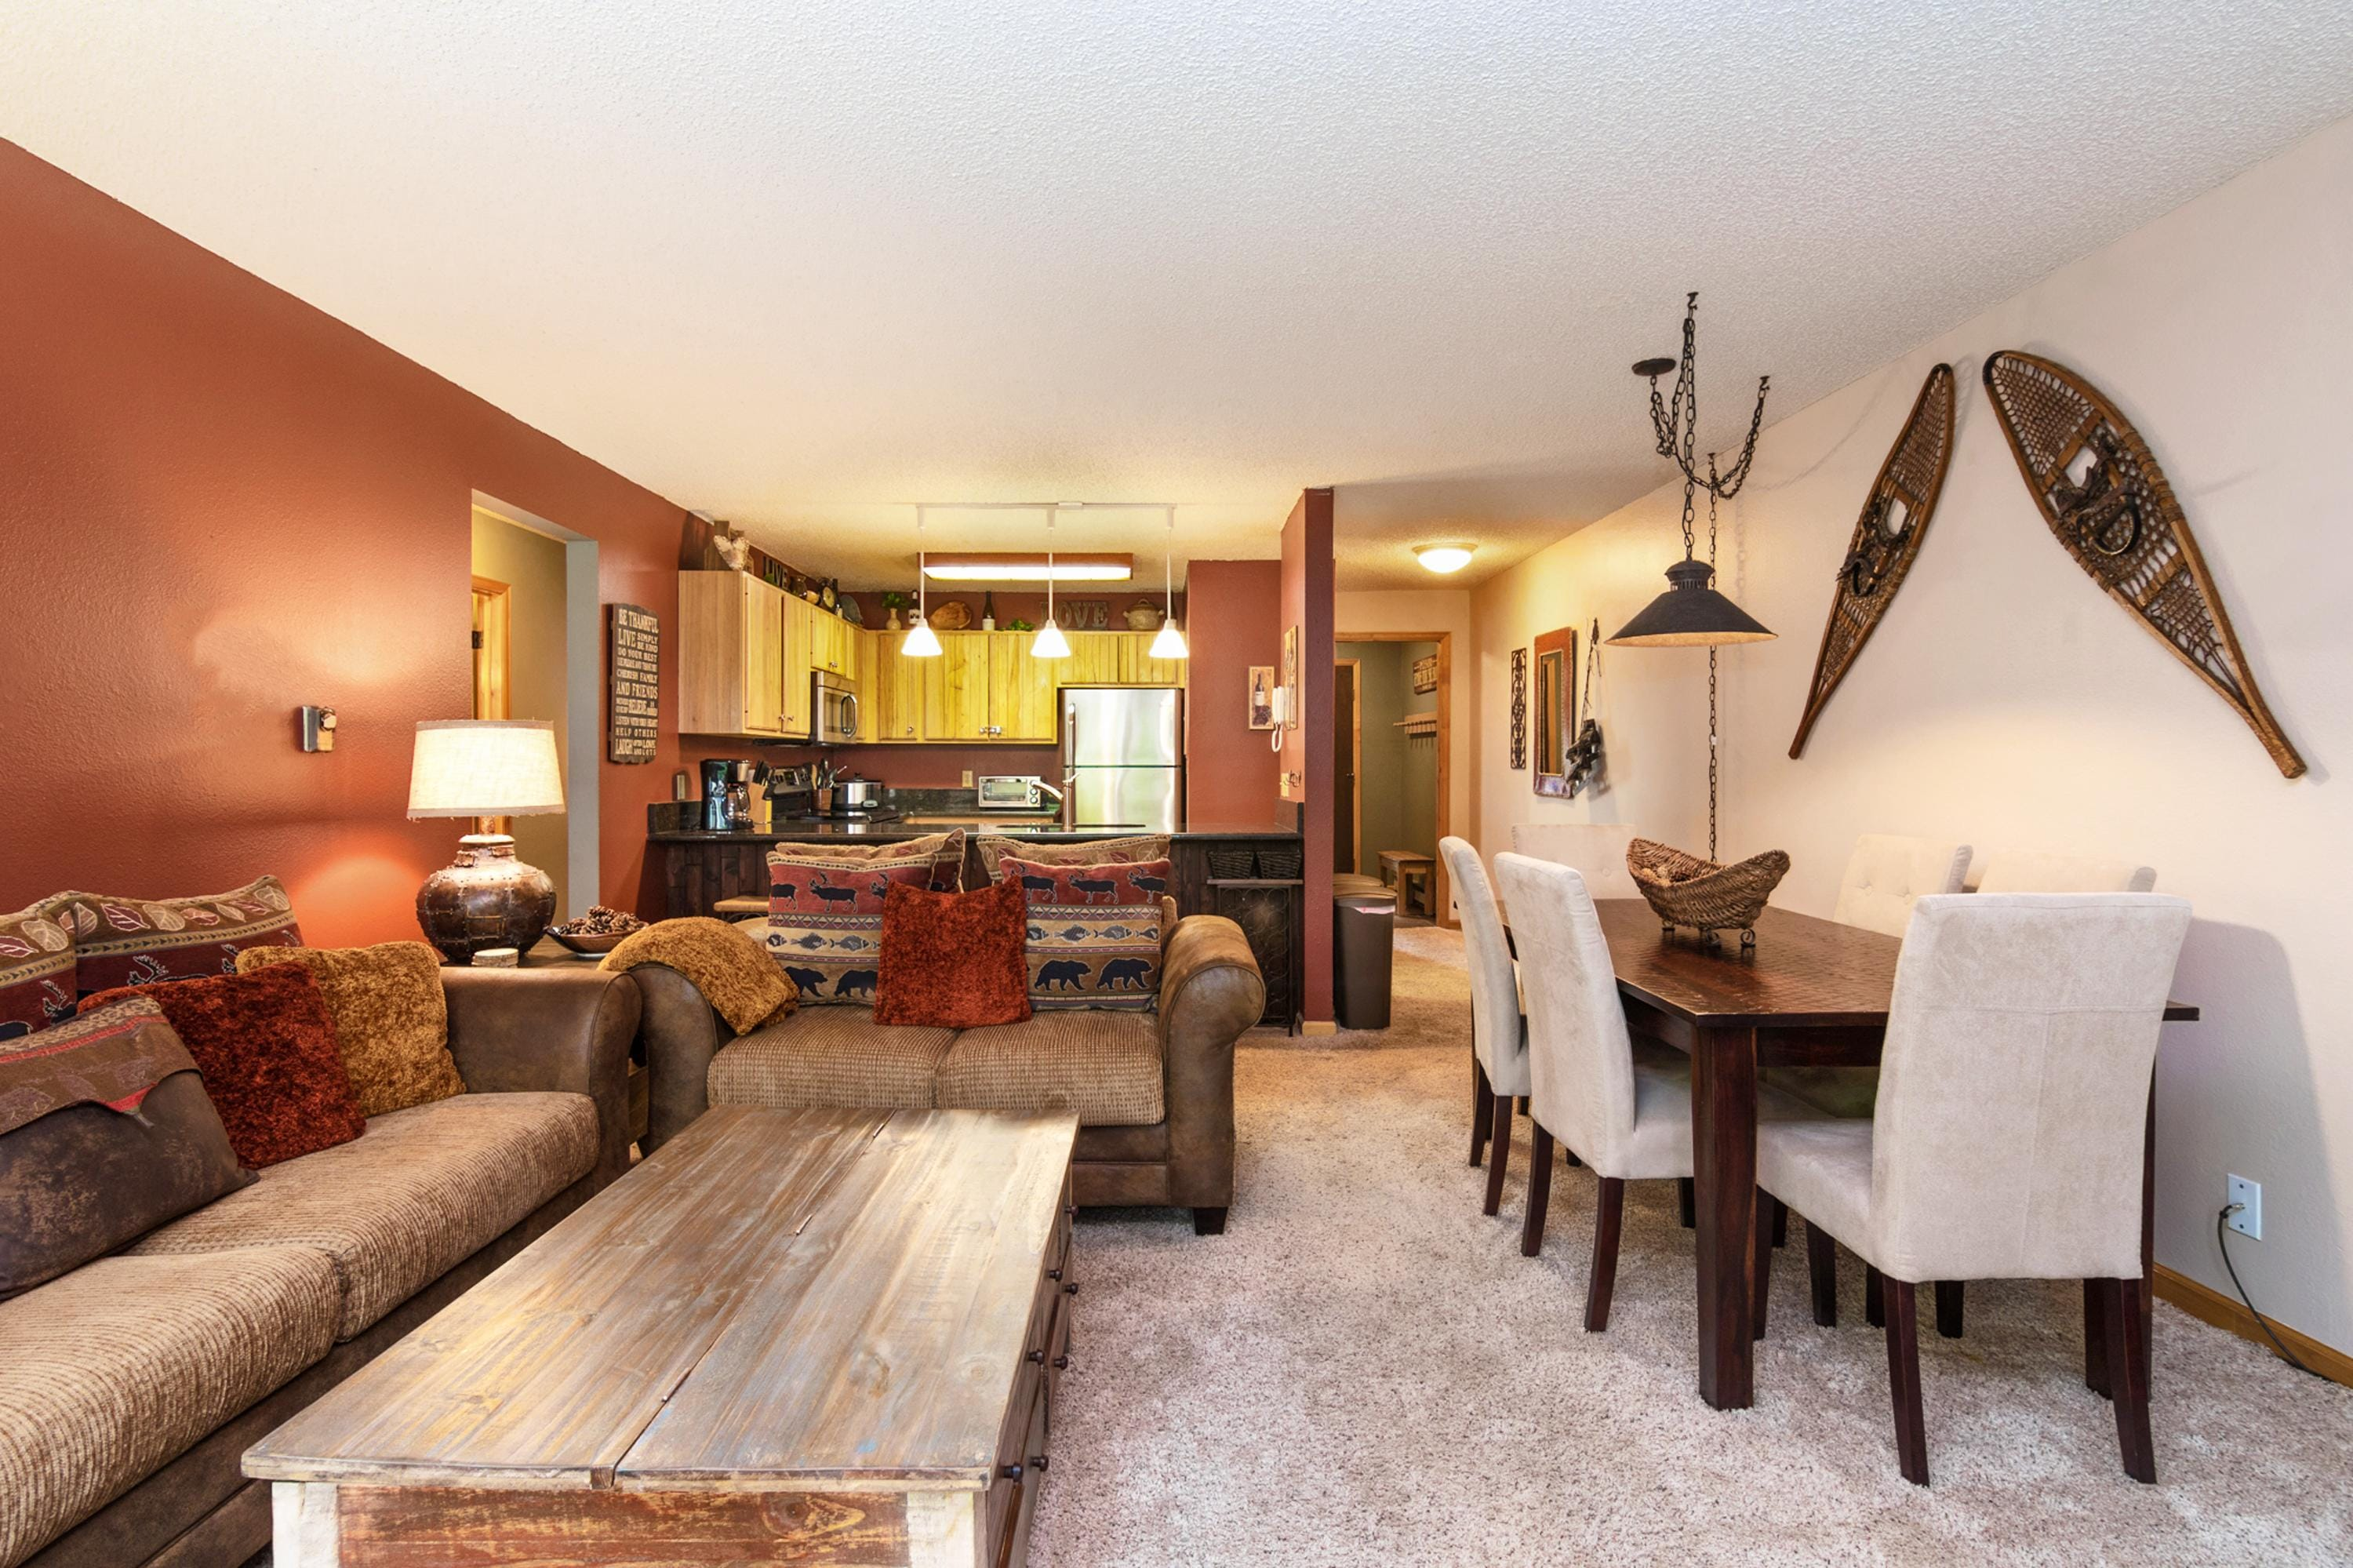 Property Image 1 - Warm Inviting Condo with Sport Amenities